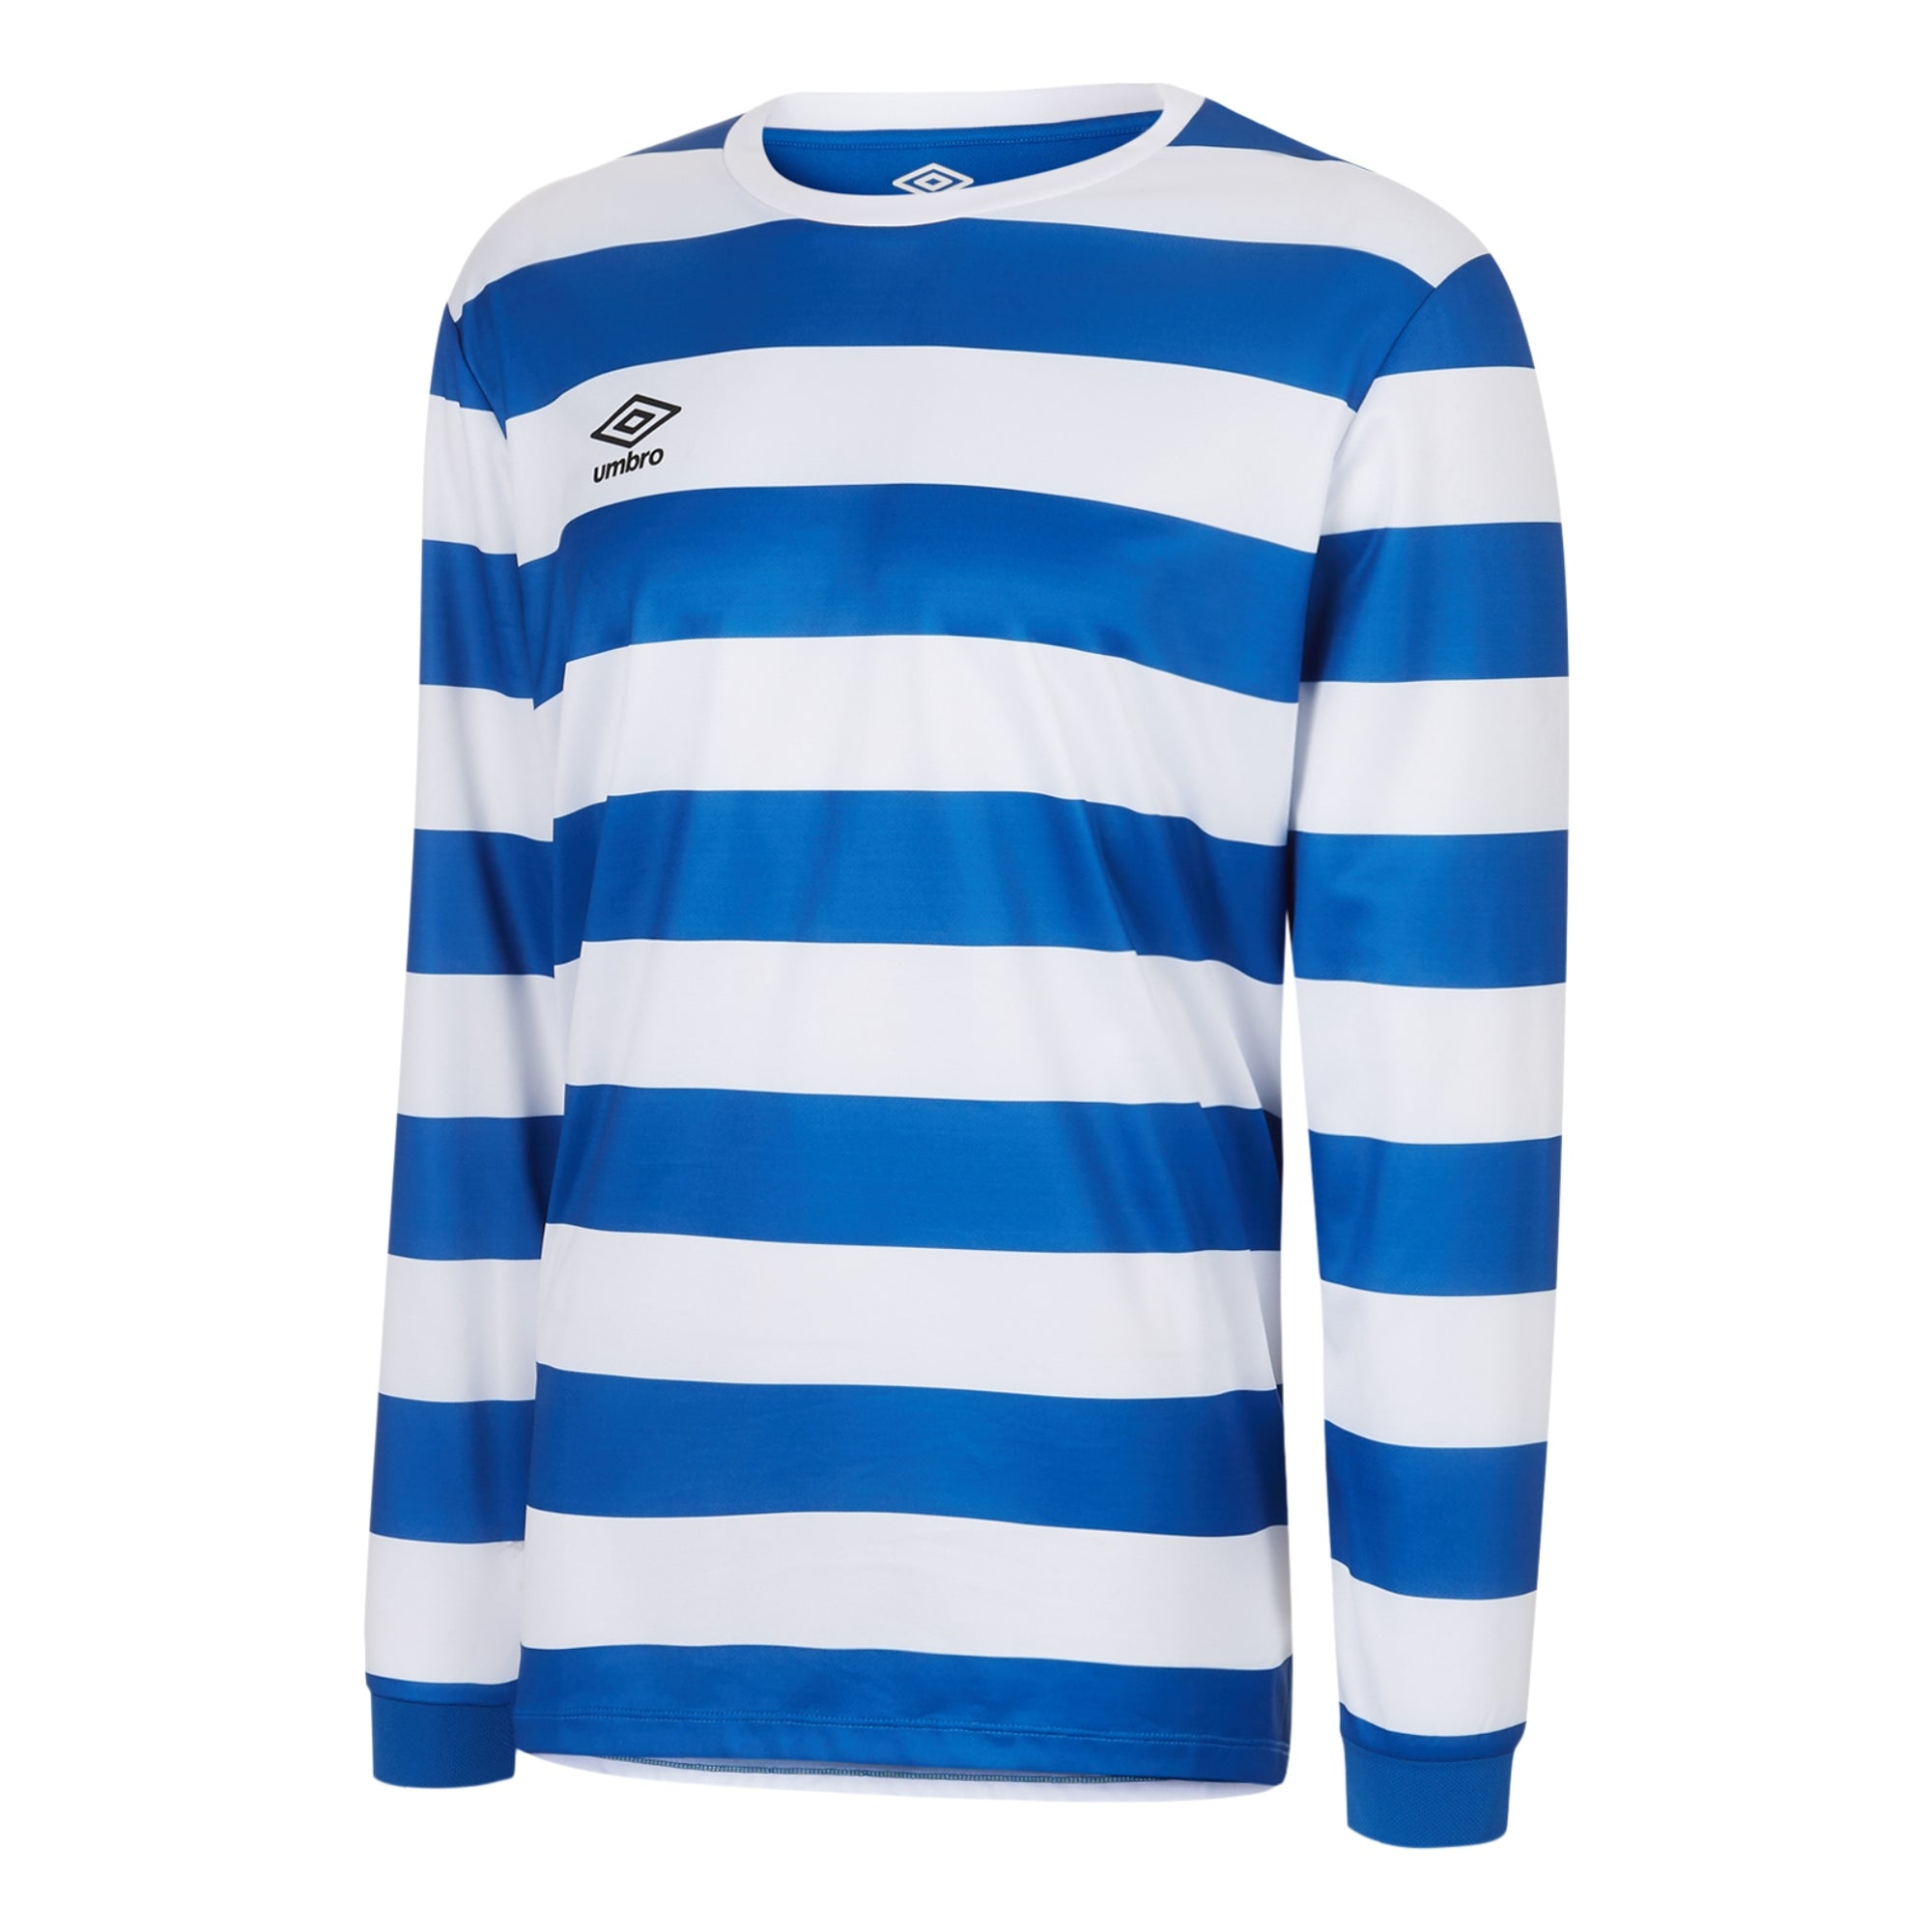 Umbro Terrace Jersey LS - Royal/White